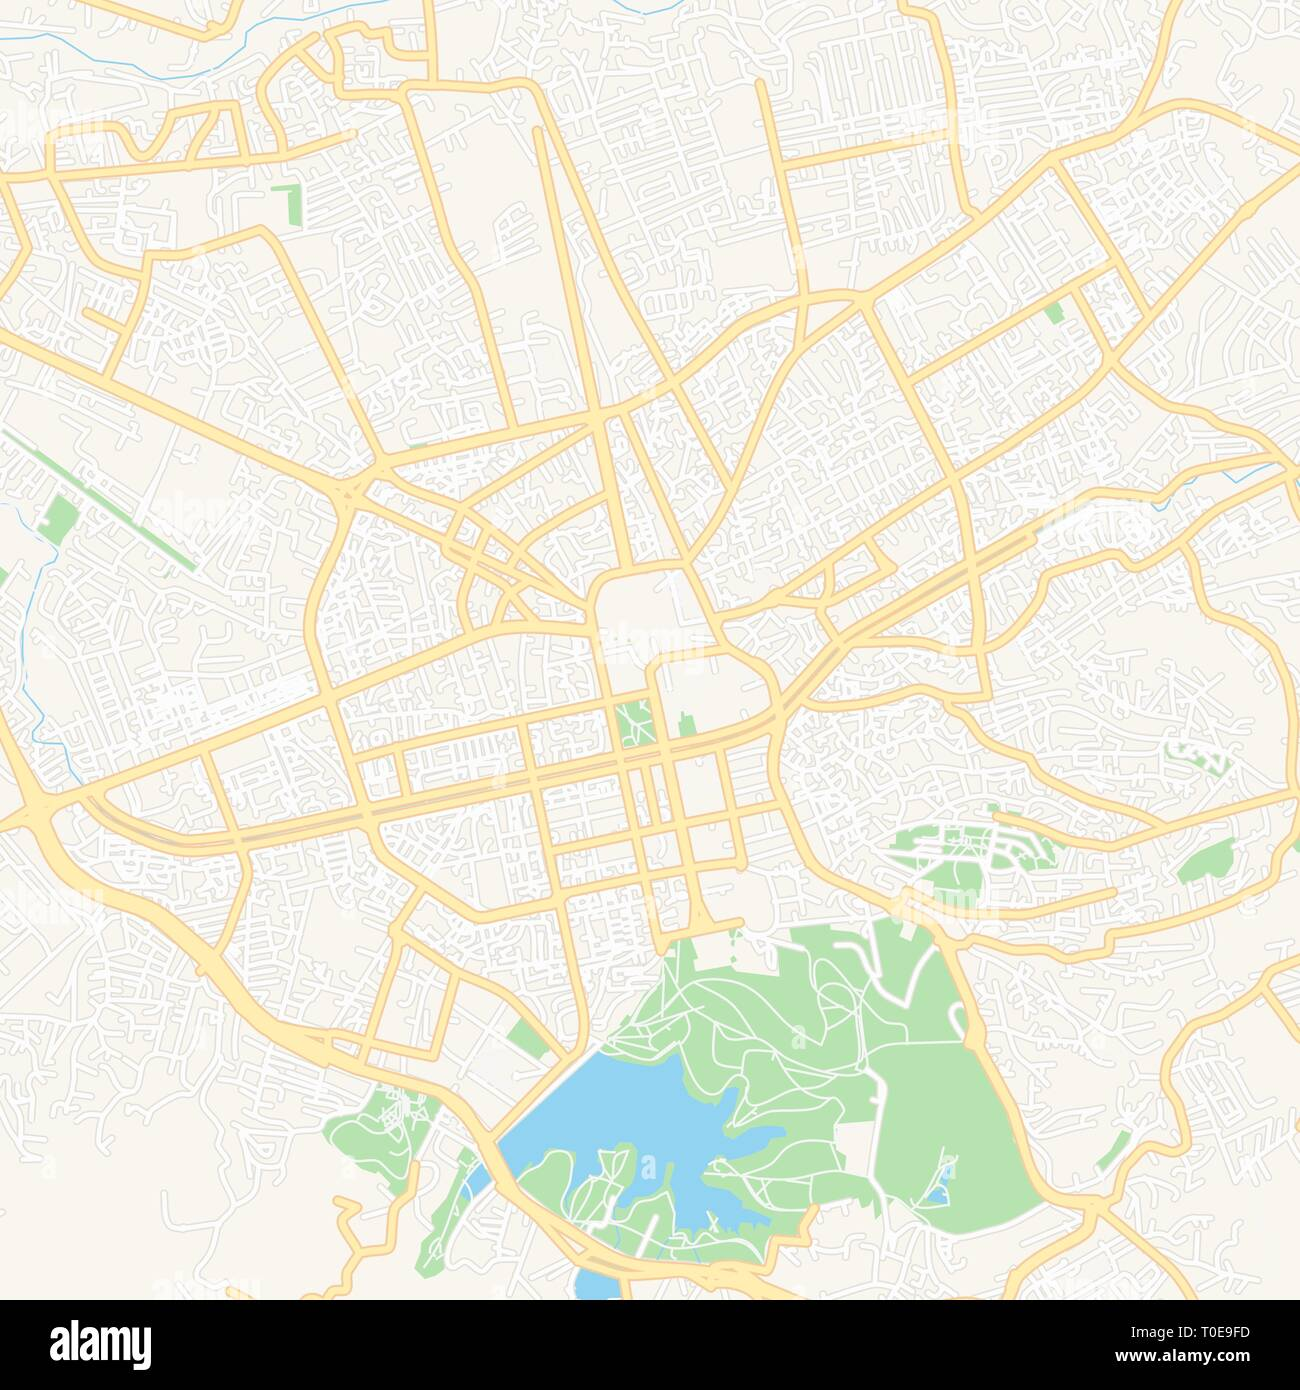 Printable map of Tirana, Albania with main and secondary roads and larger railways. This map is carefully designed for routing and placing individual  - Stock Vector